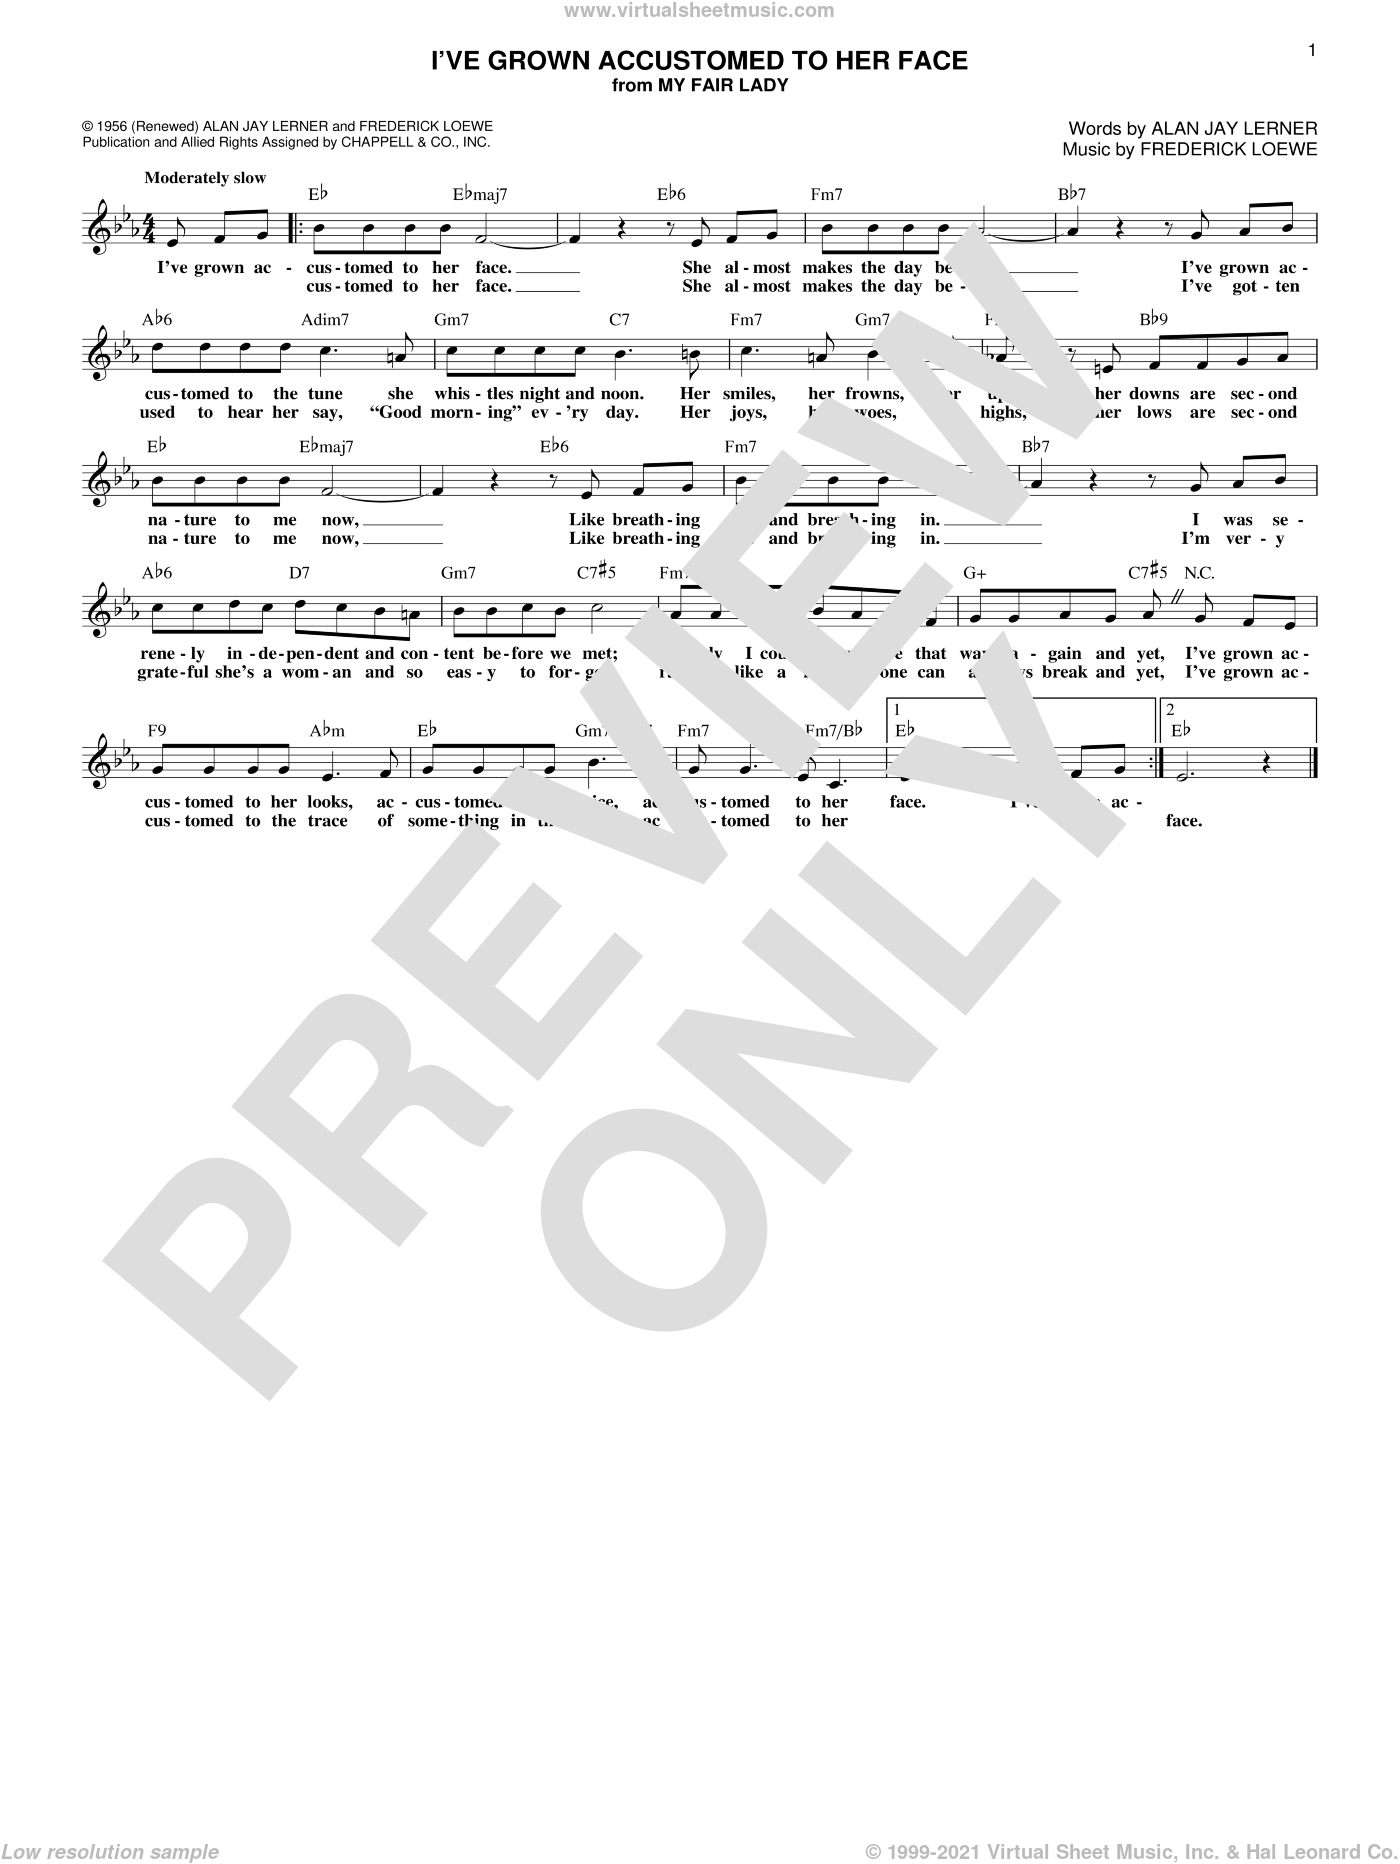 I've Grown Accustomed To Her Face (from My Fair Lady) sheet music for voice and other instruments (fake book) by Alan Jay Lerner and Frederick Loewe, intermediate skill level